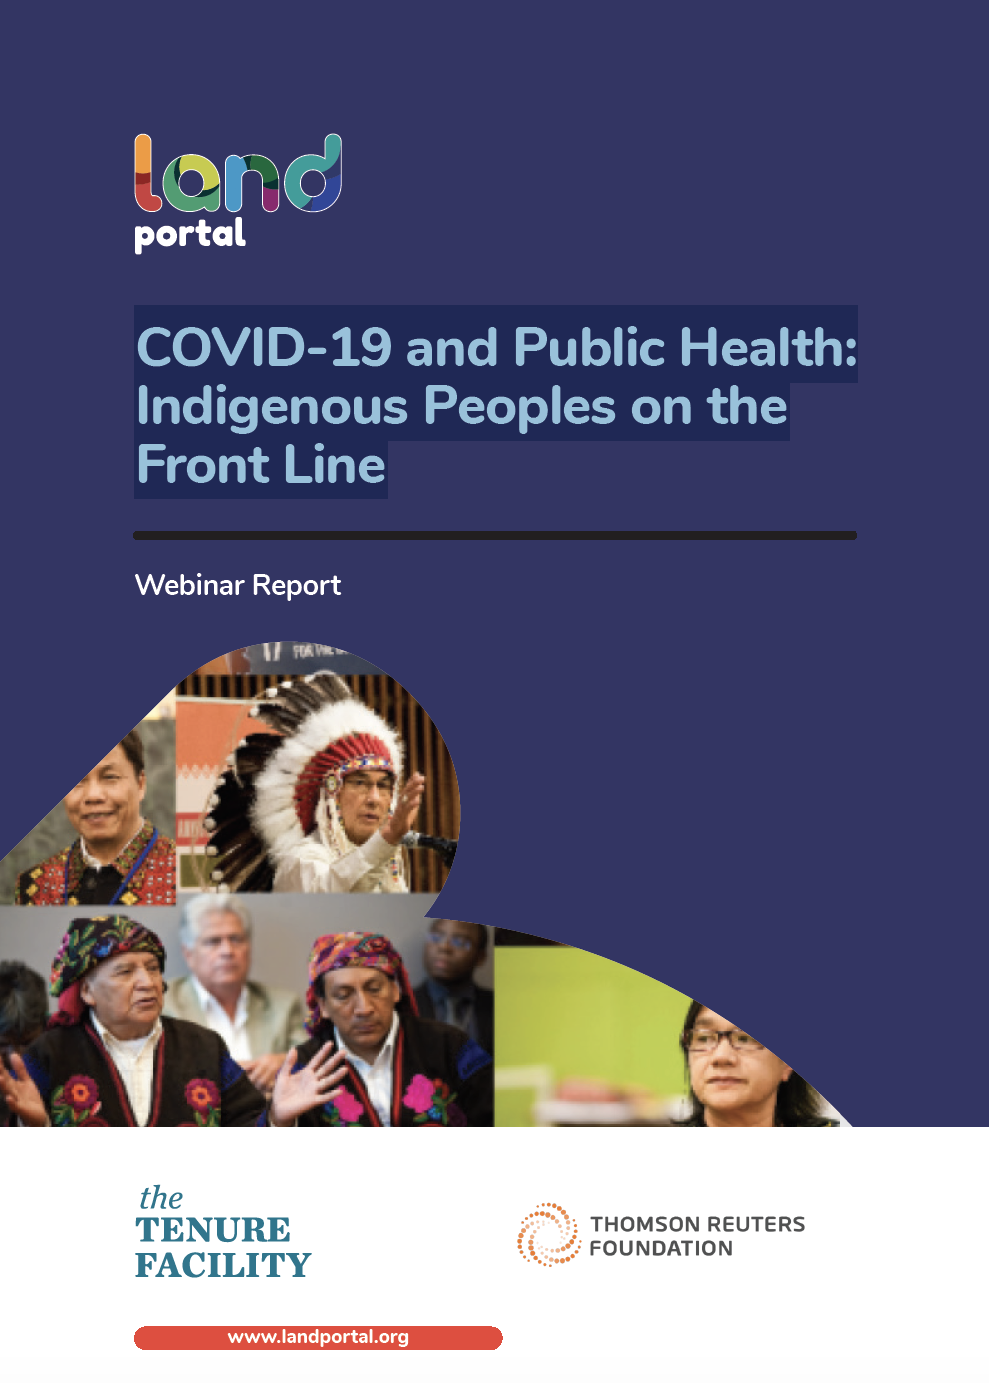 COVID-19 and Public Health: Indigenous Peoples on the Front Line